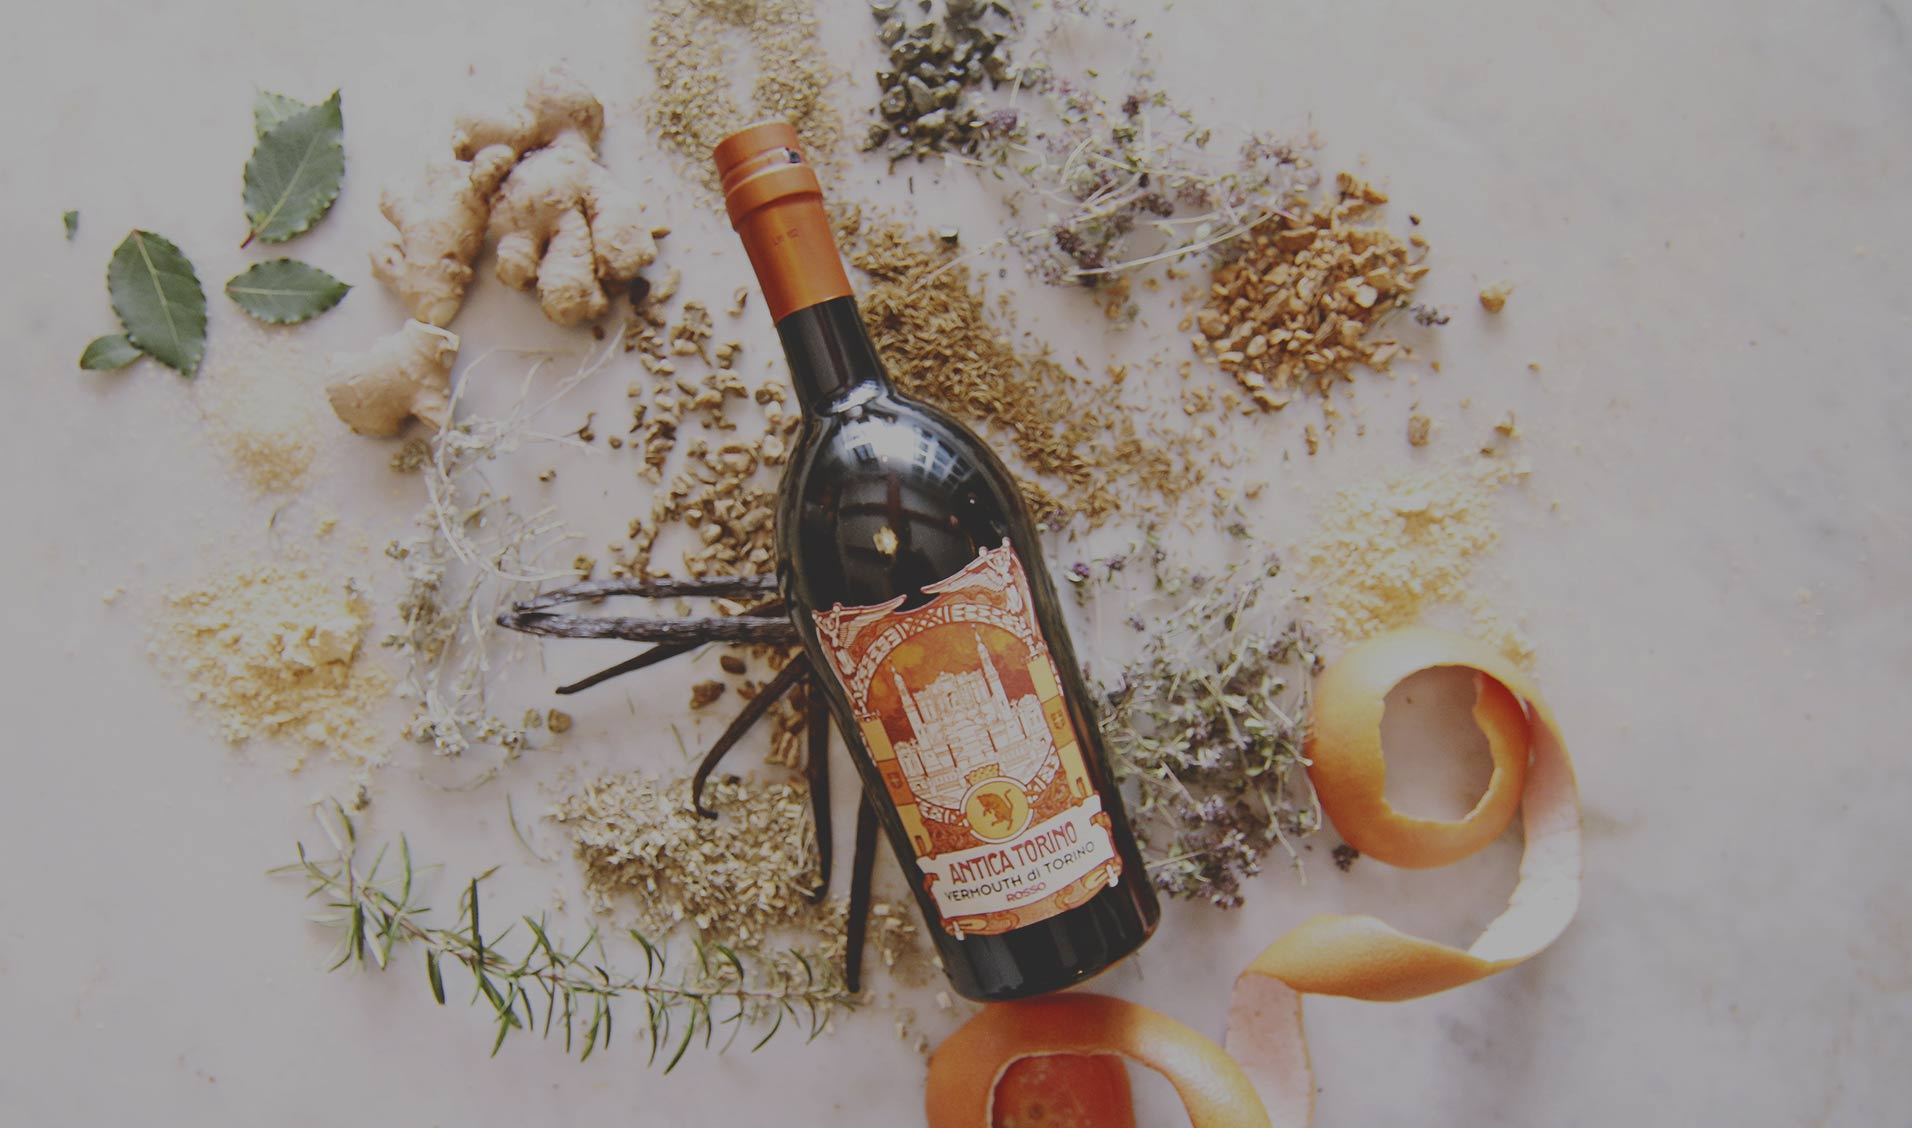 Vermouth as you've never tasted it before.